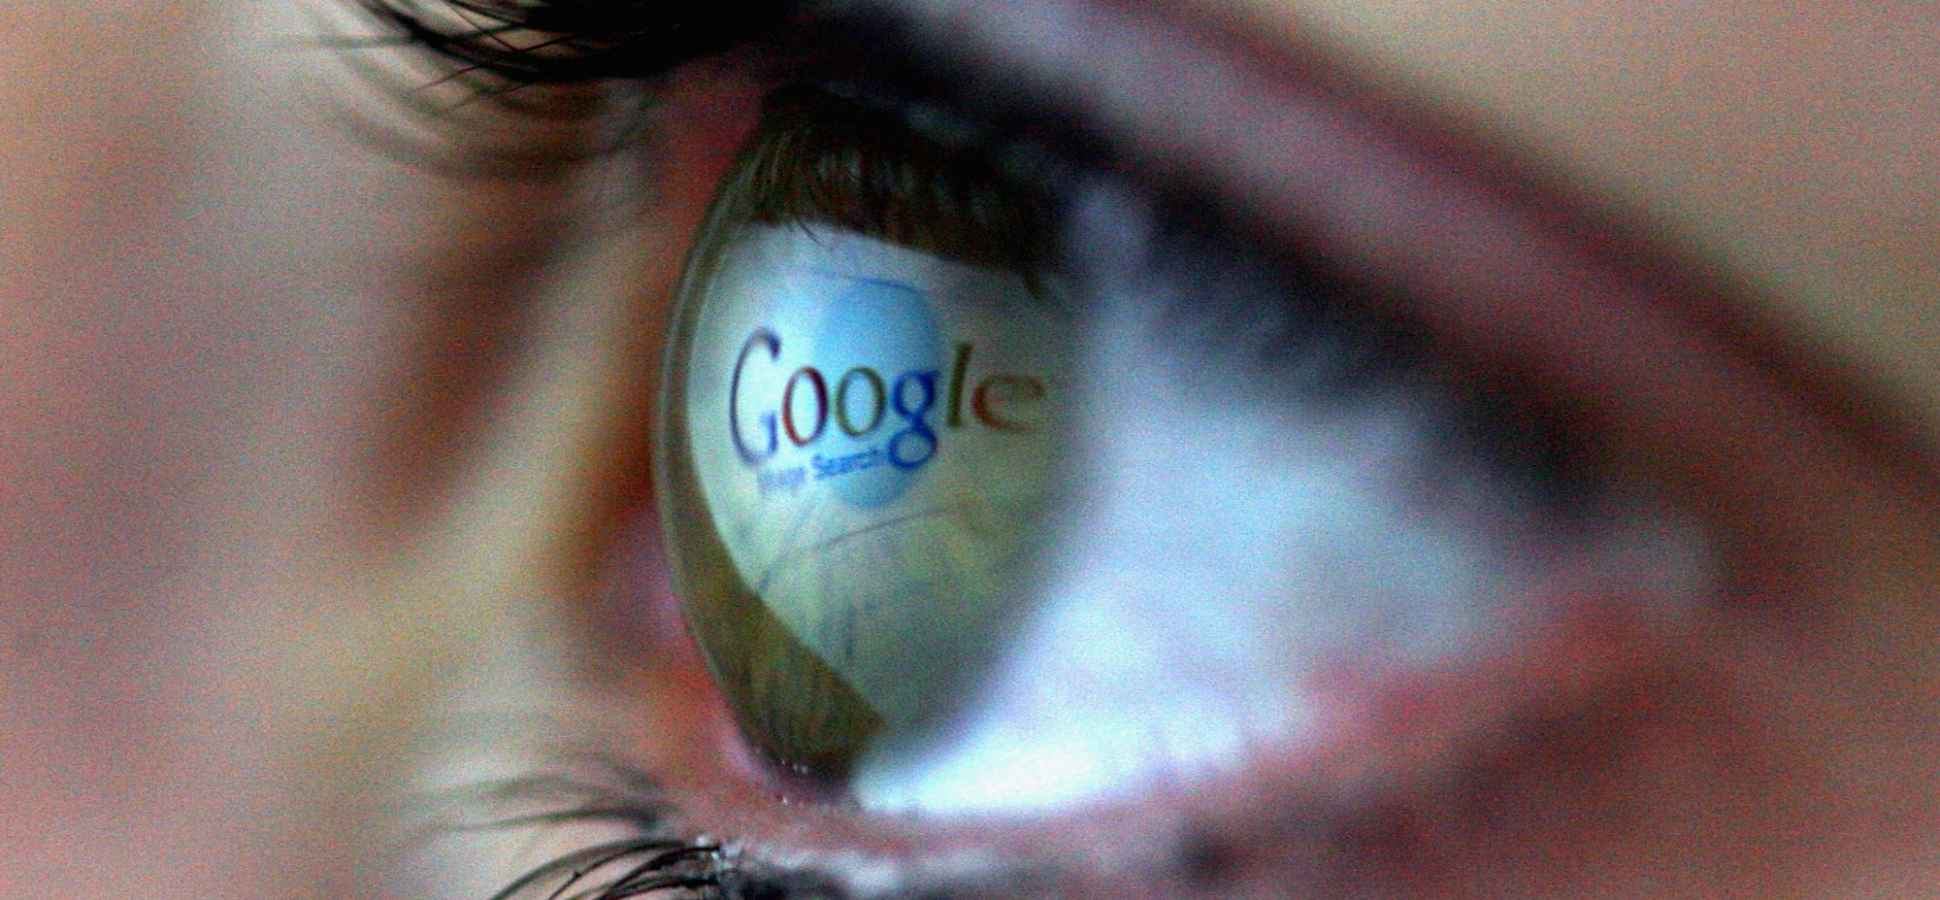 The Long-Neglected Google Patent That Could Bring the NSA To Its Knees